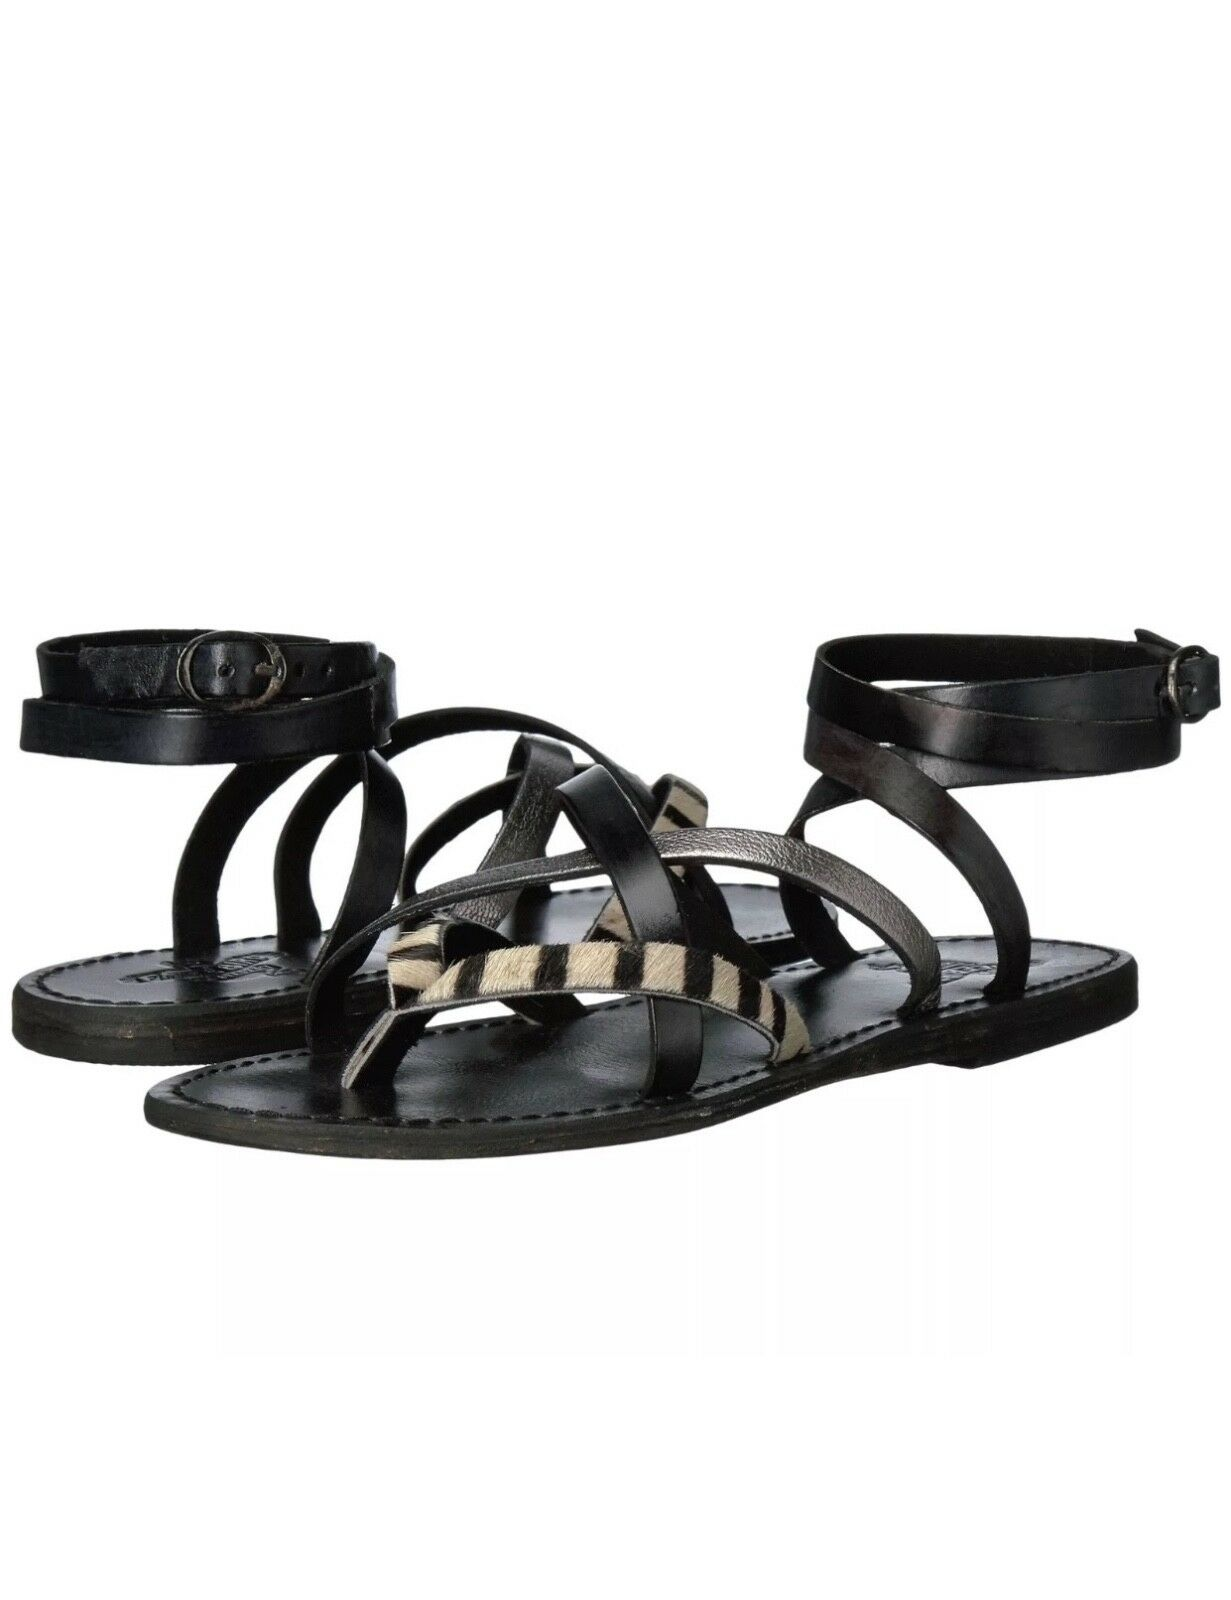 NWT The Buckle FreeBird ankle wrap sandals size 7